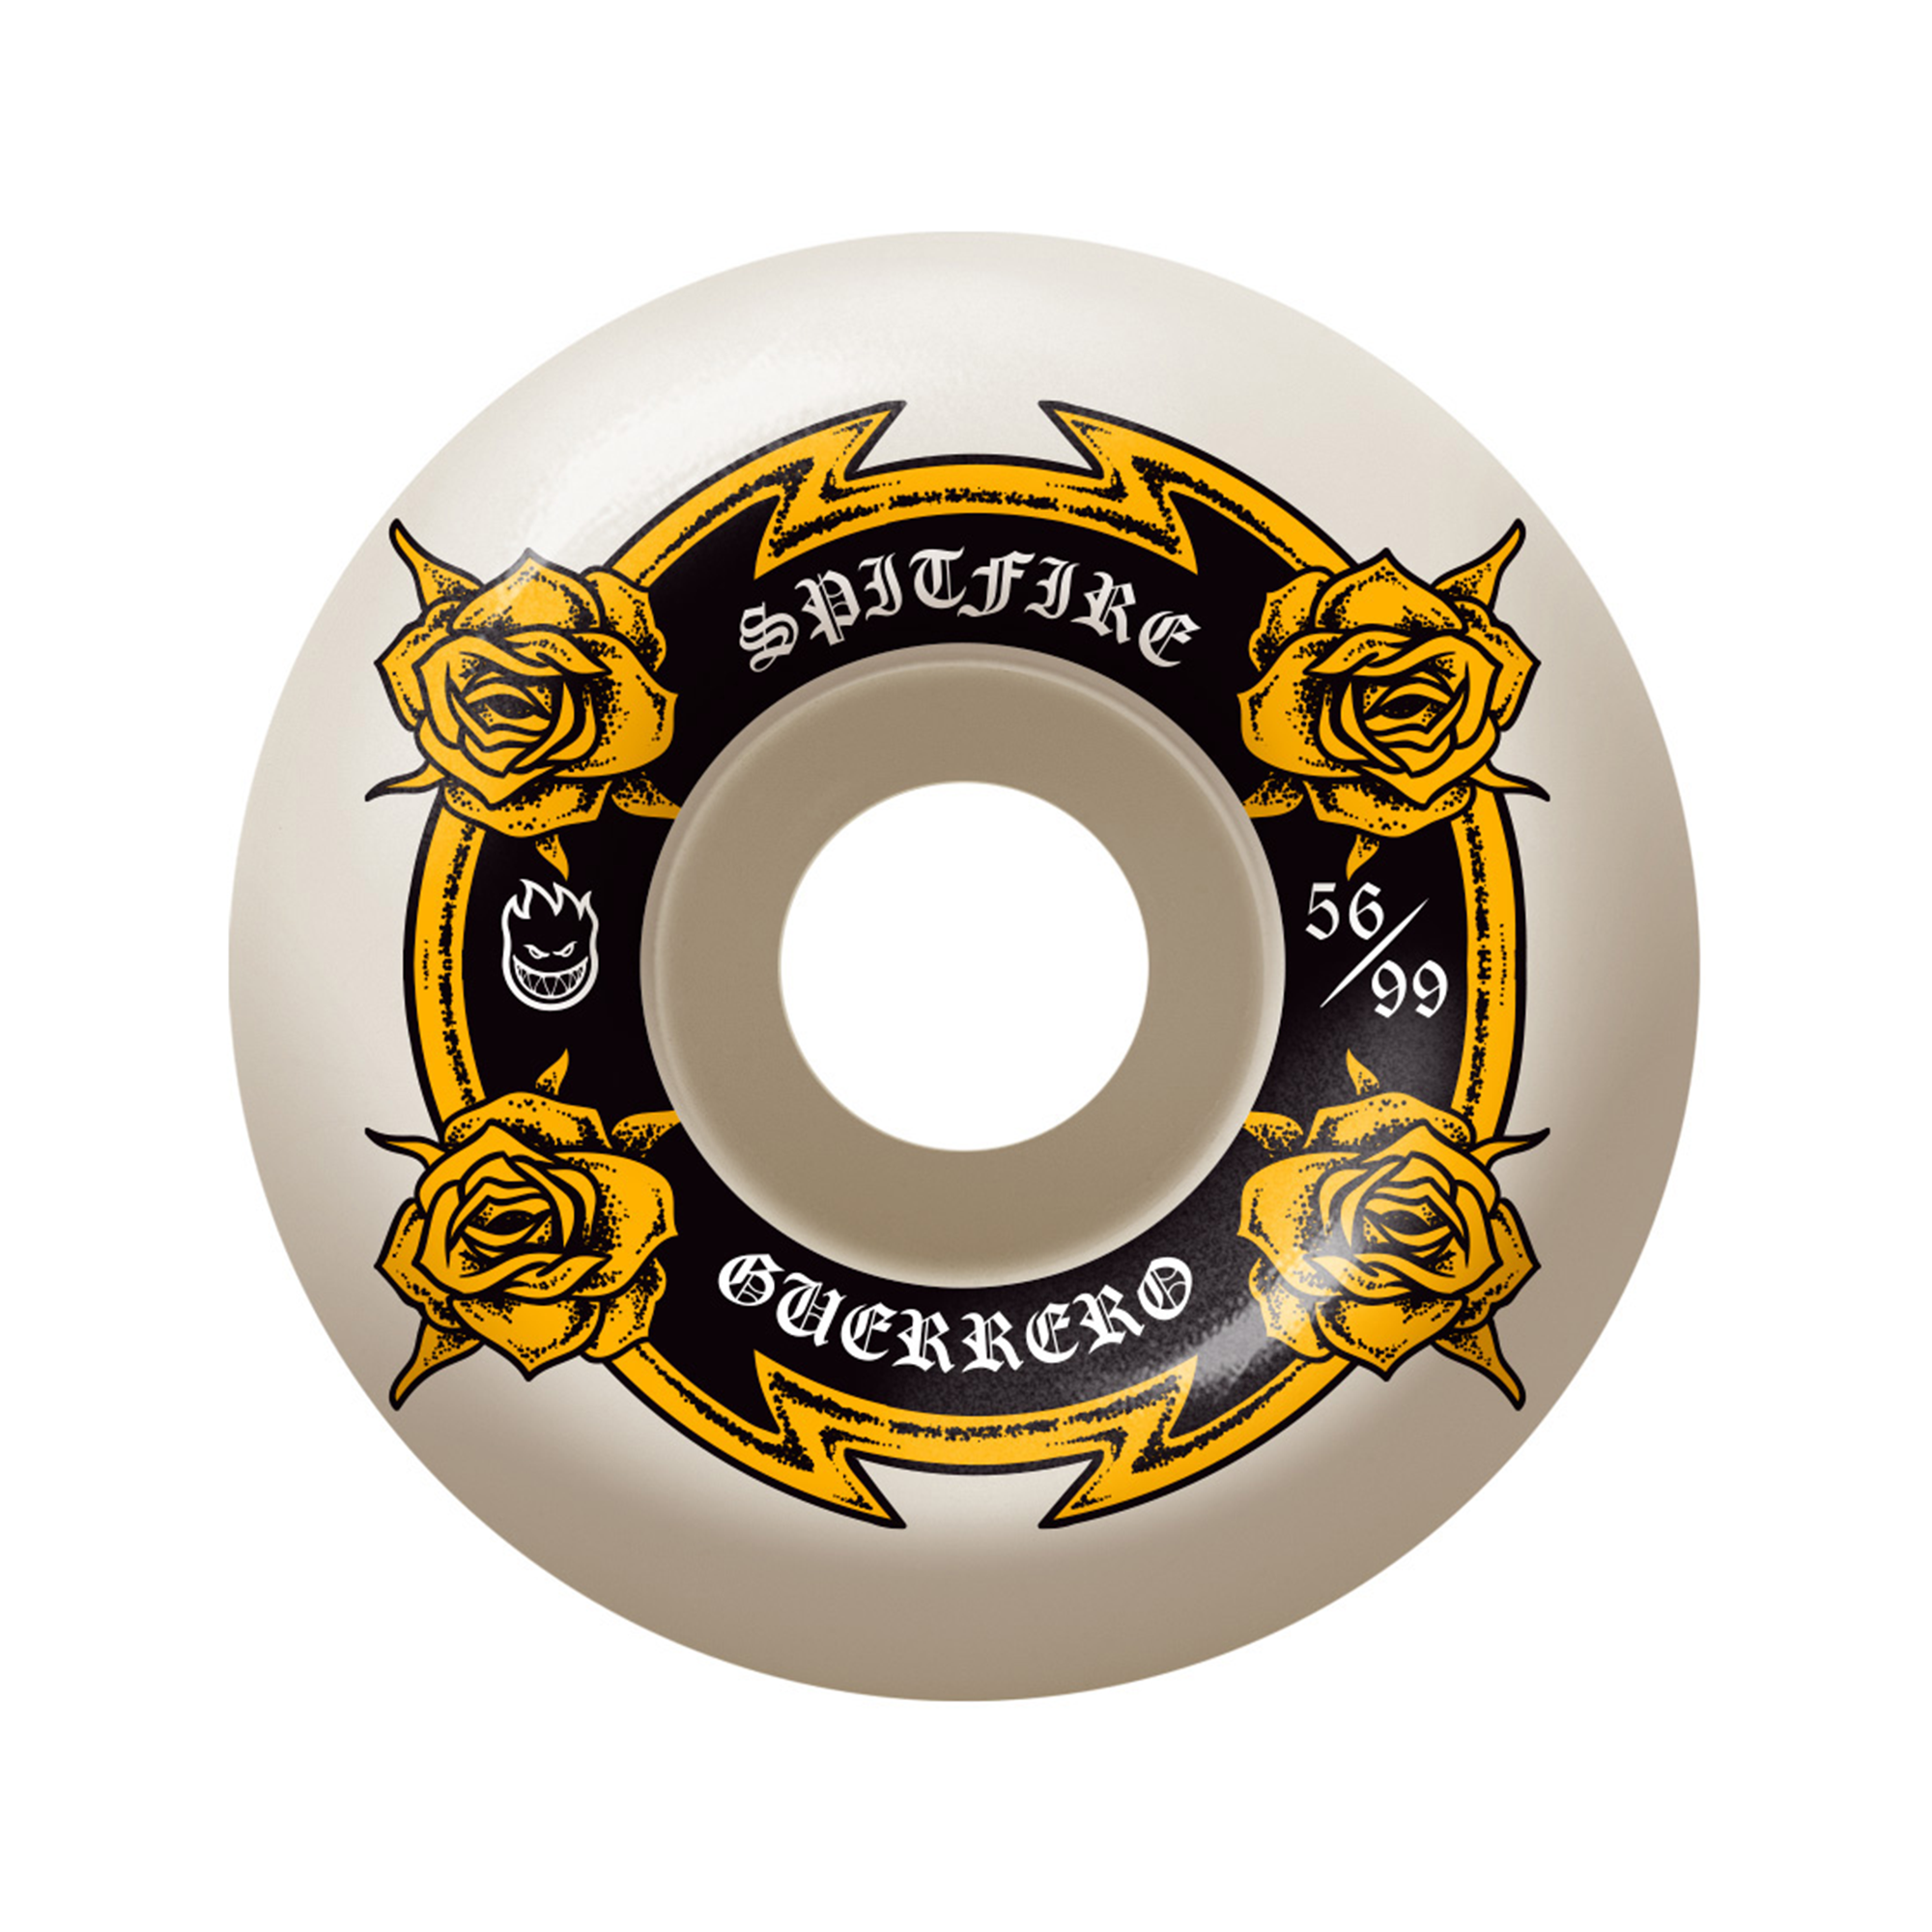 Spitfire Guerrero Wheels - 56mm Product Photo #1